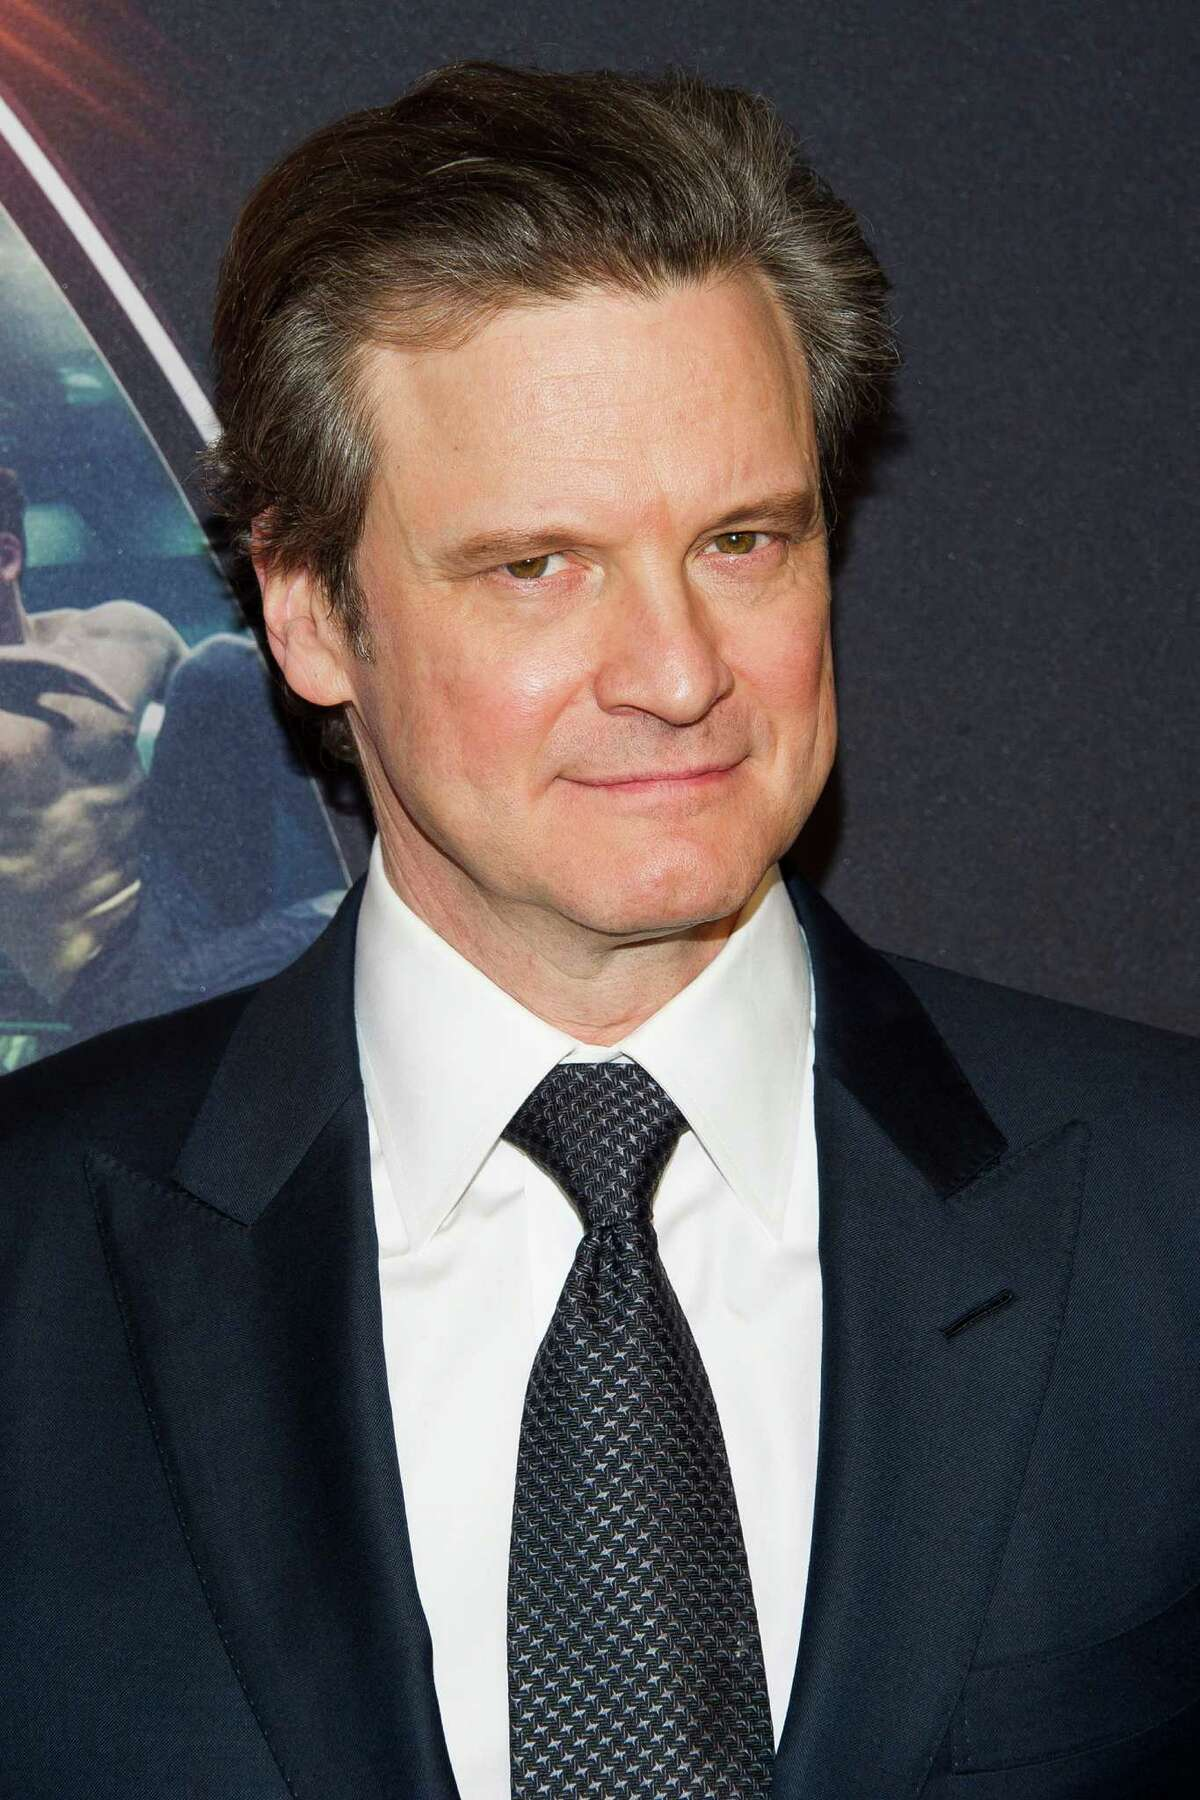 """Colin Firth attends a special screening of """"Kingsman: The Secret Service"""" at the SVA Theatre on Monday, Feb. 9, 2015, in New York. (Photo by Charles Sykes/Invision/AP) ORG XMIT: NYCS109"""